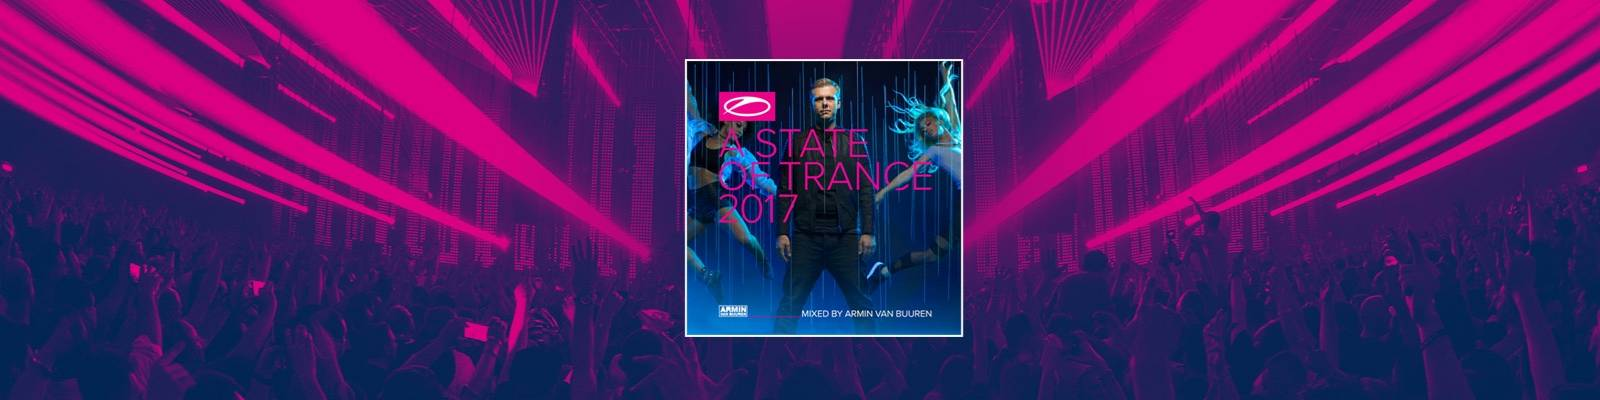 OUT NOW: A State Of Trance 2017